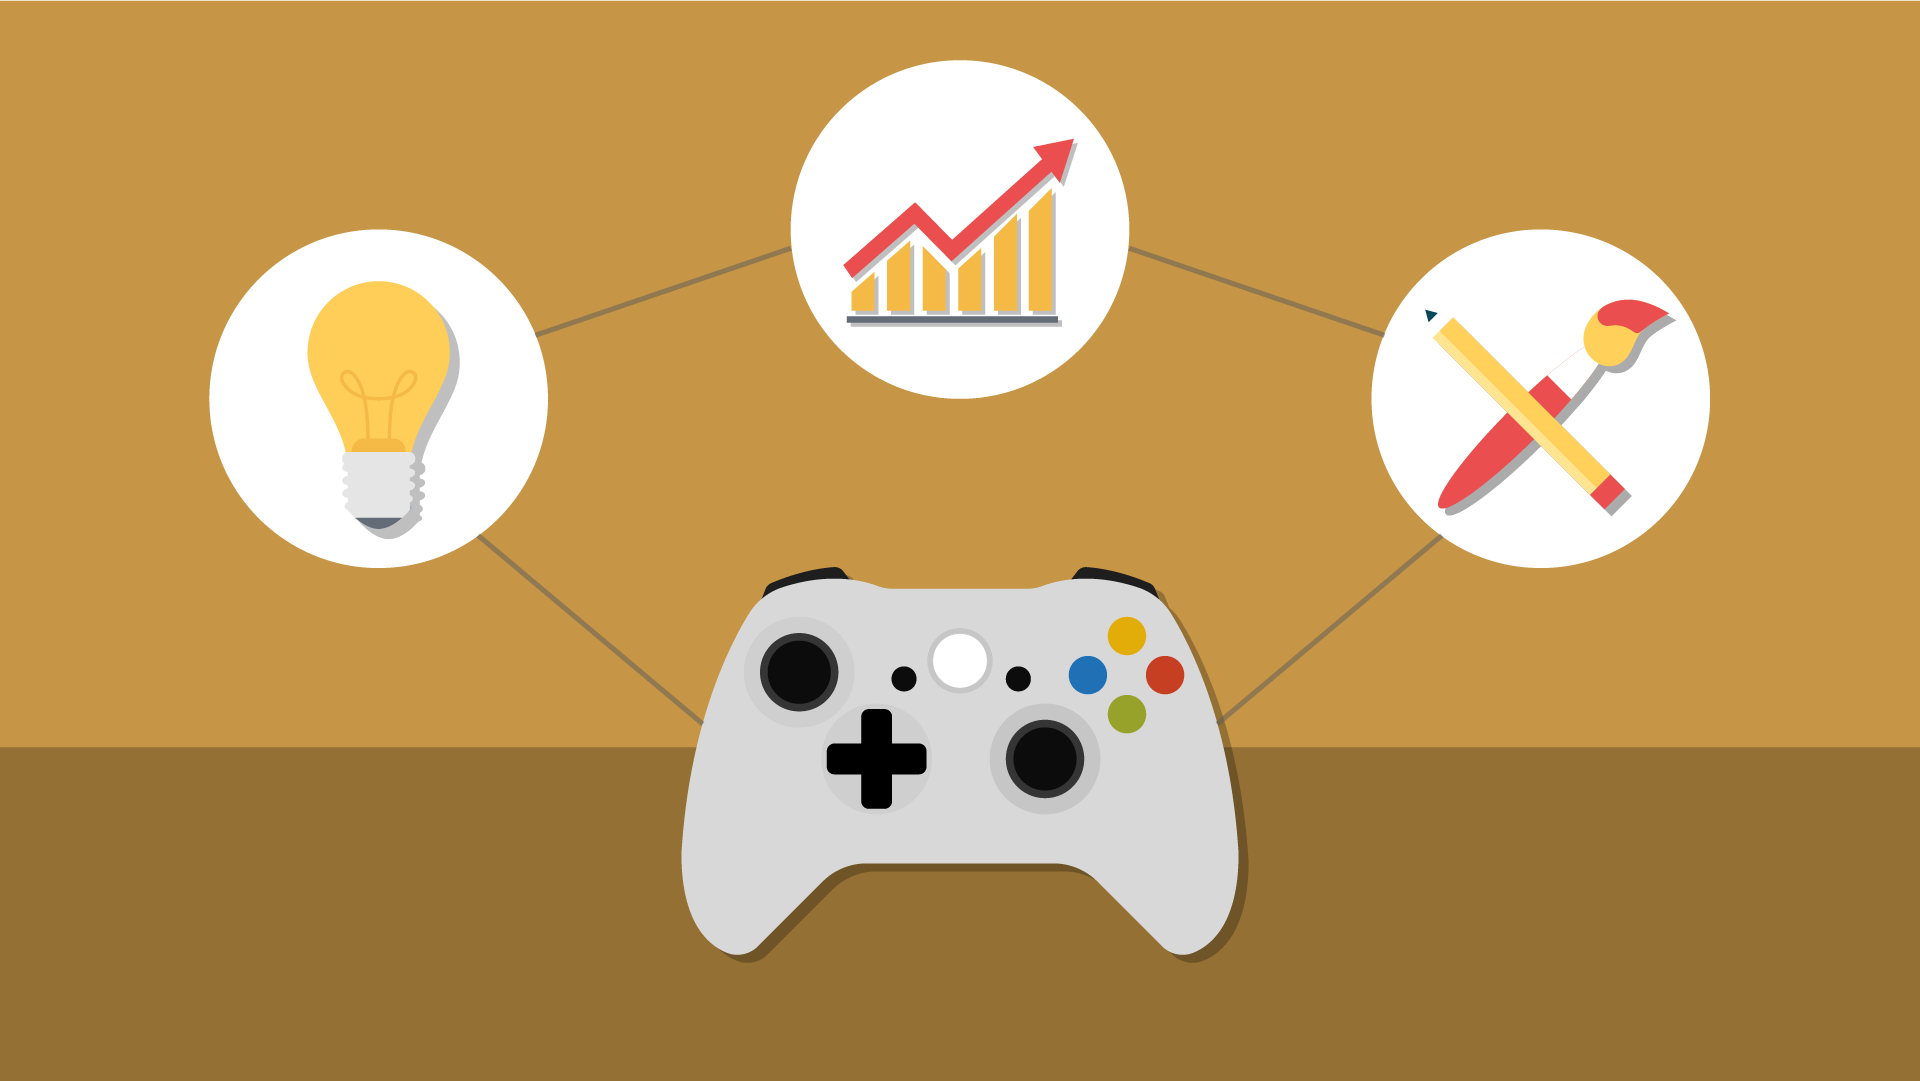 Gamification Core Loop: What Makes Games Fun?